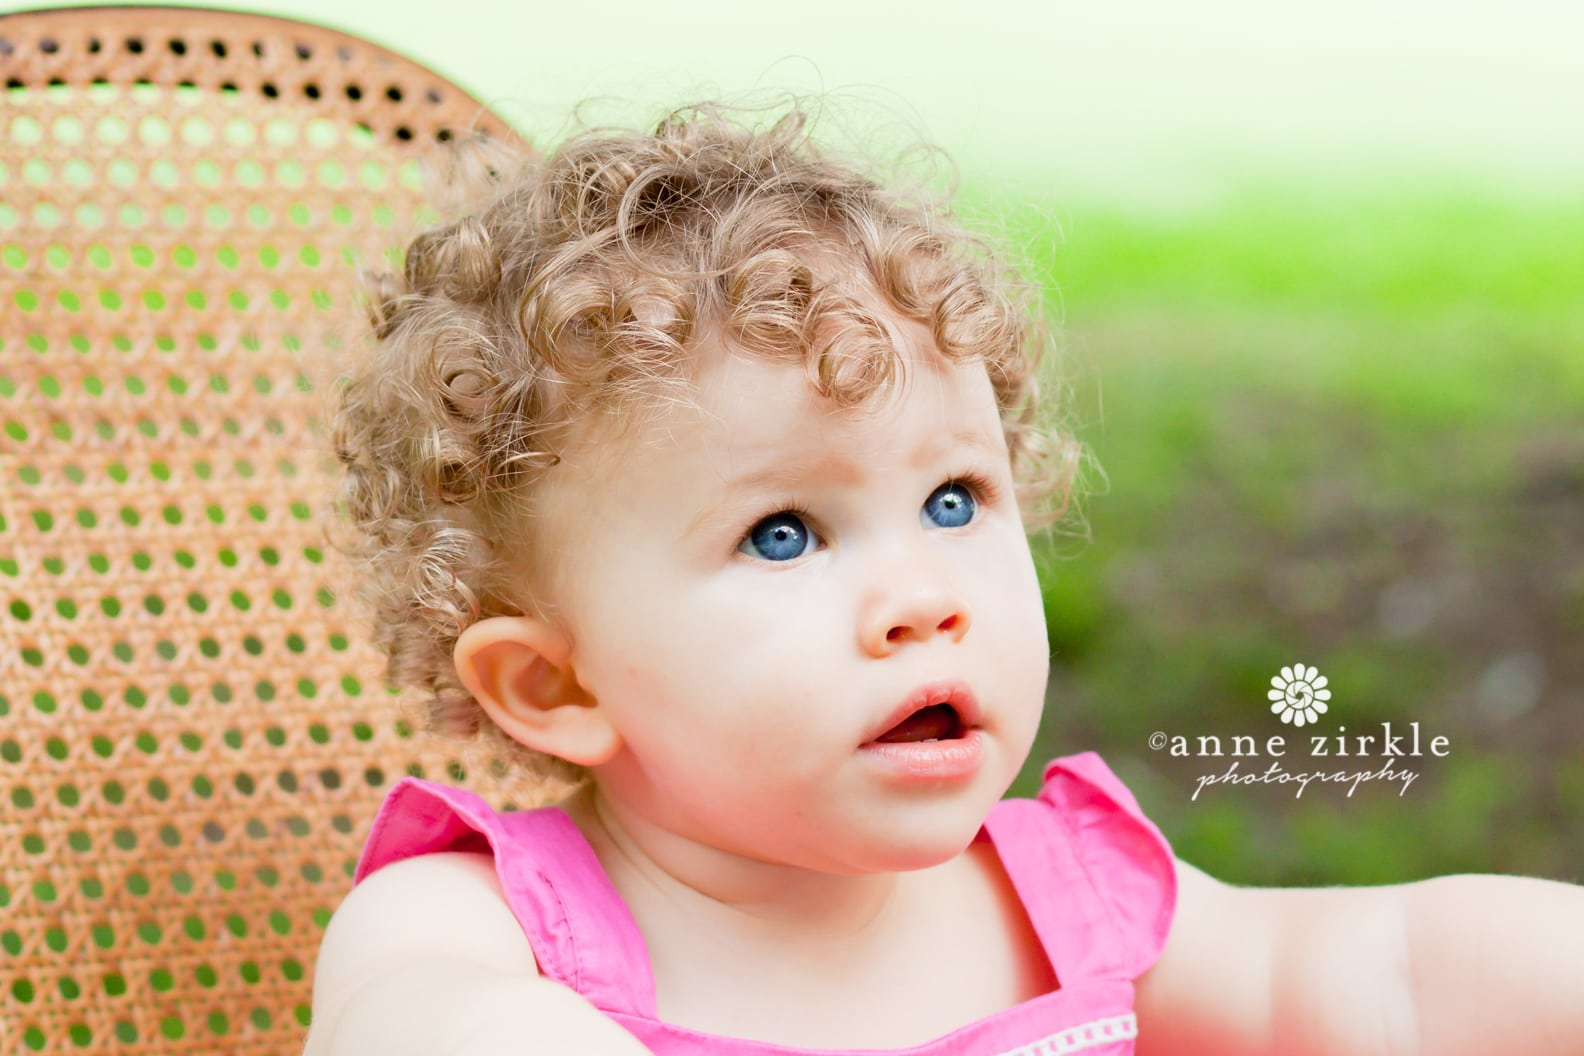 baby-girl-with-curly-hair-and-blue-eyes